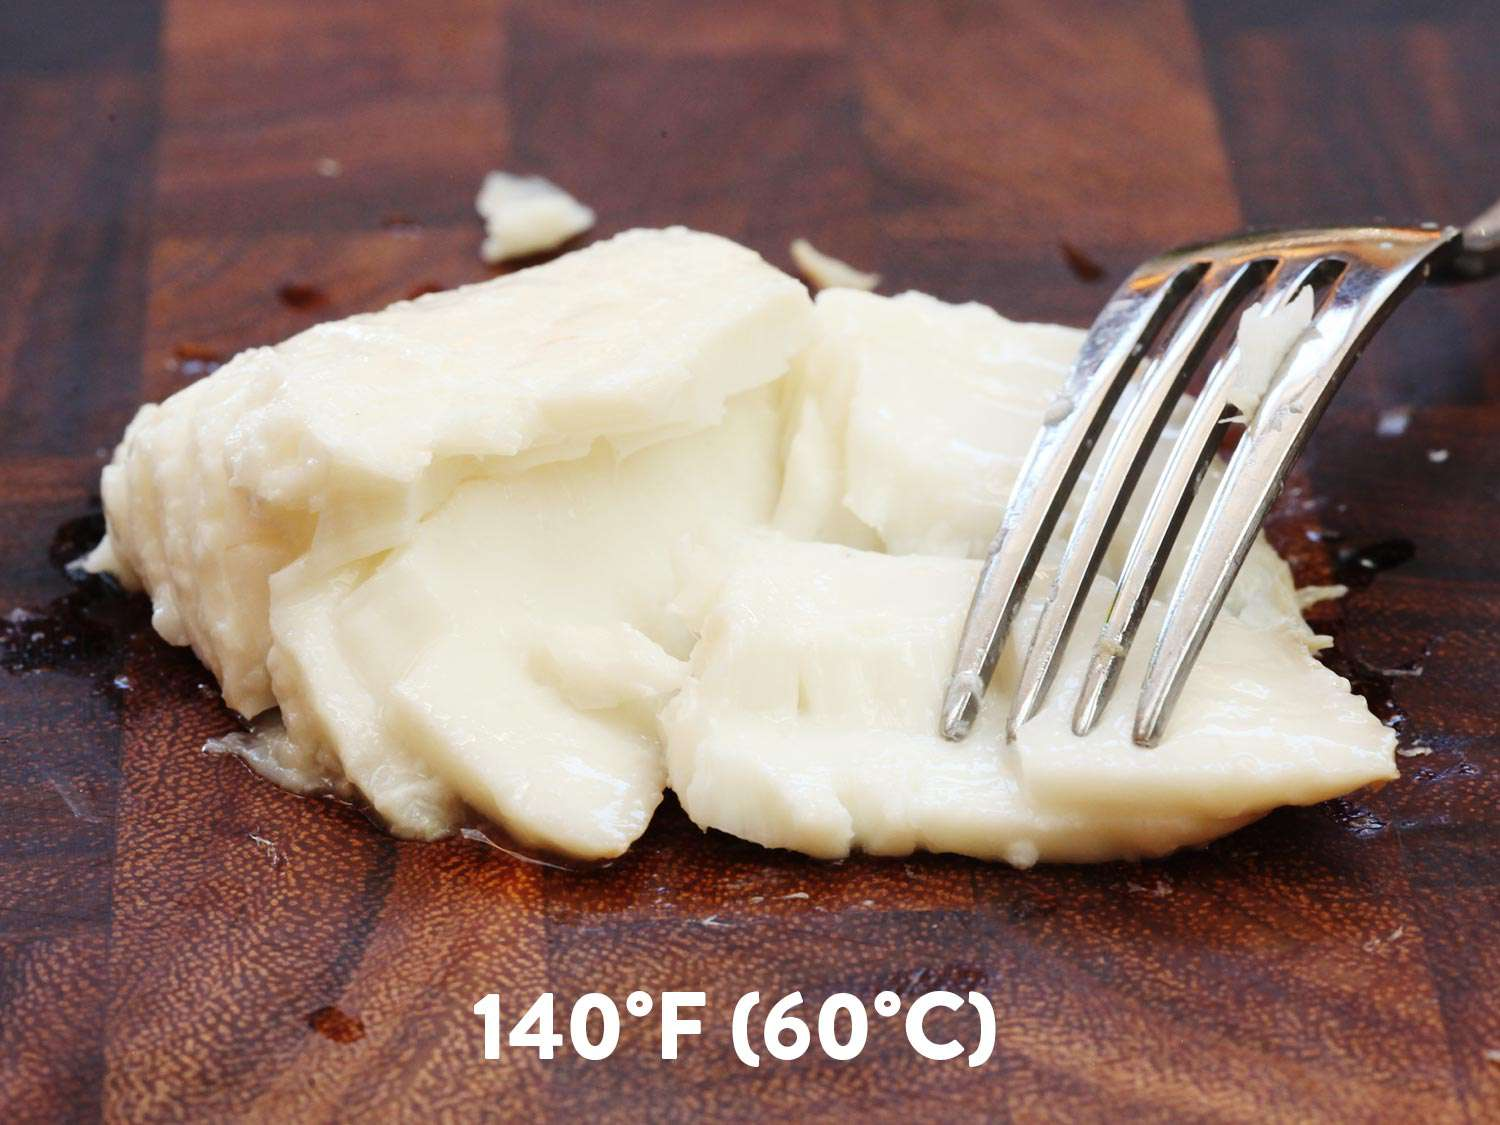 A piece of sous vide halibut cooked to 140 degrees F. It's being flaked with a fork.